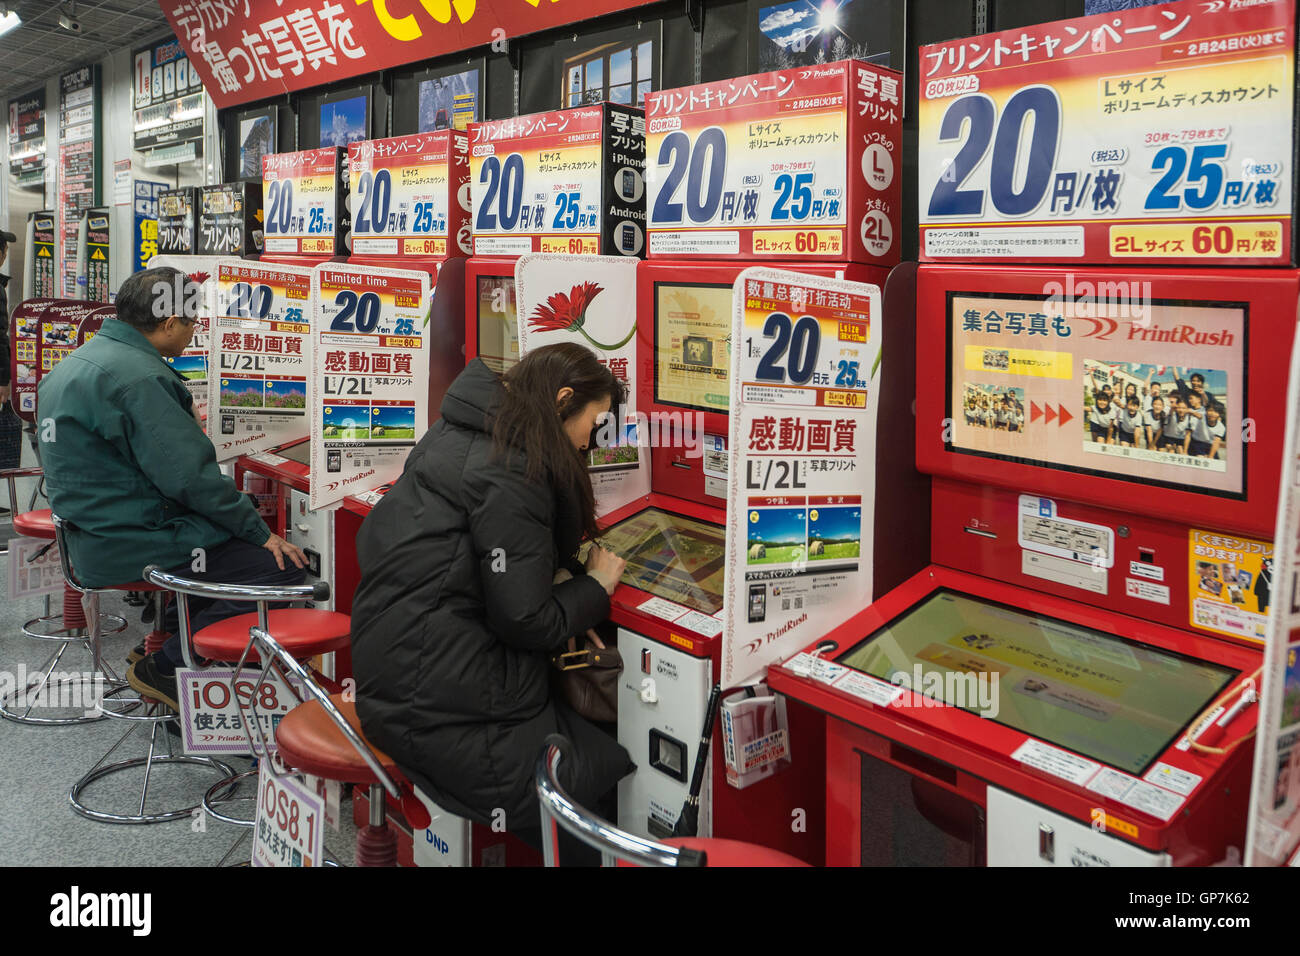 Automatic colour printing machines in mall, tokyo, japan - Stock Image